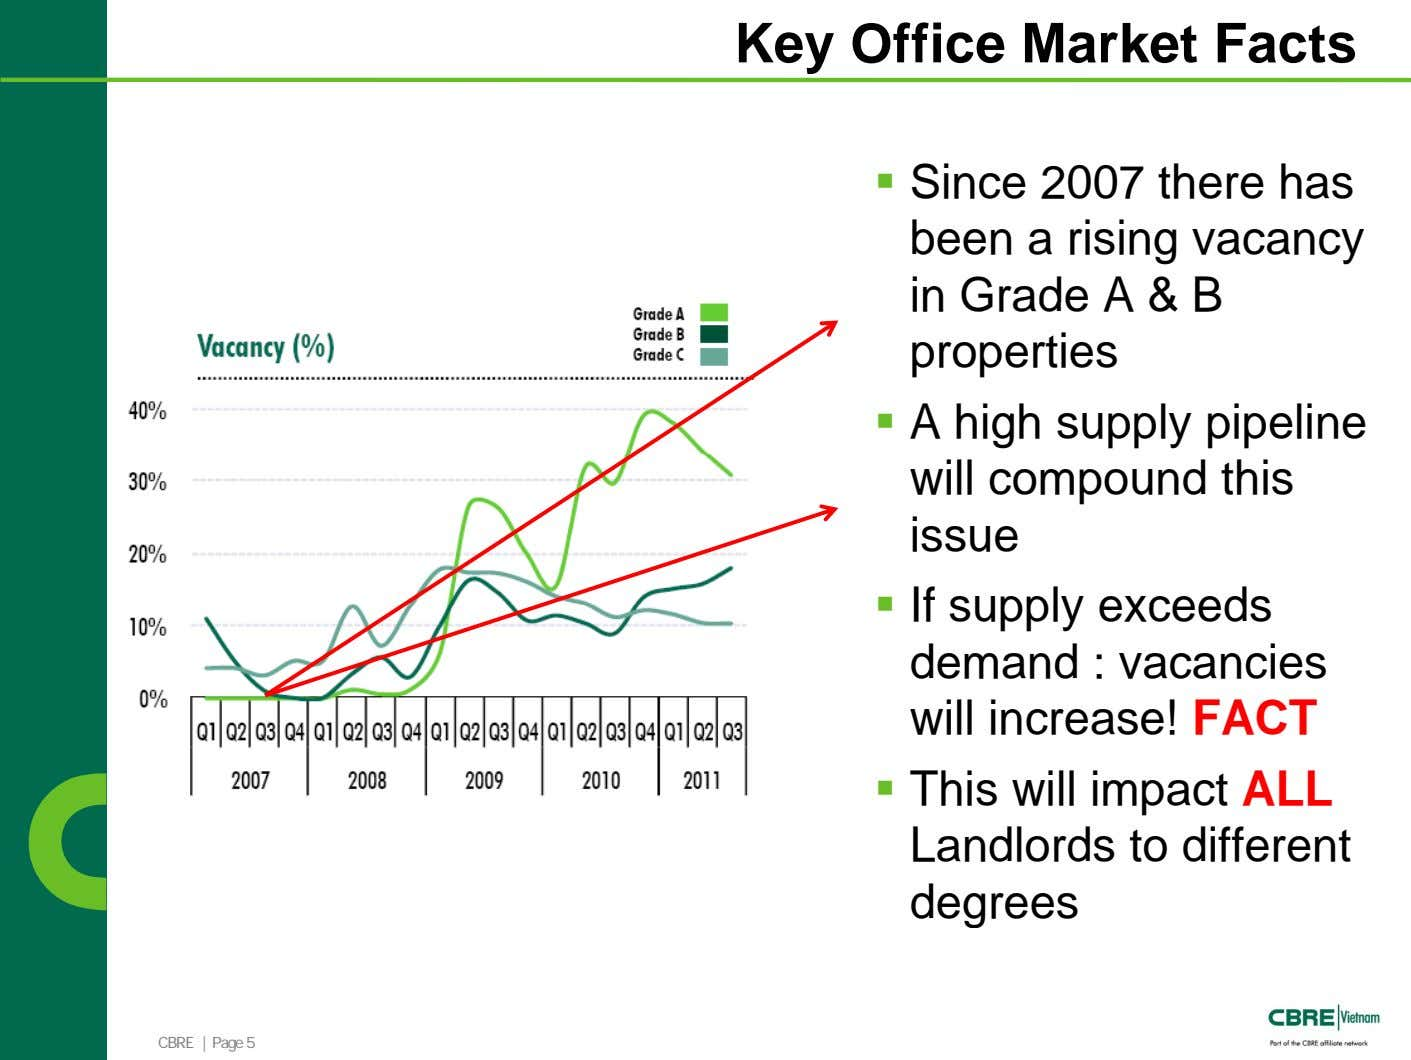 Key Office Market Facts Since 2007 there has been a rising vacancy in Grade A